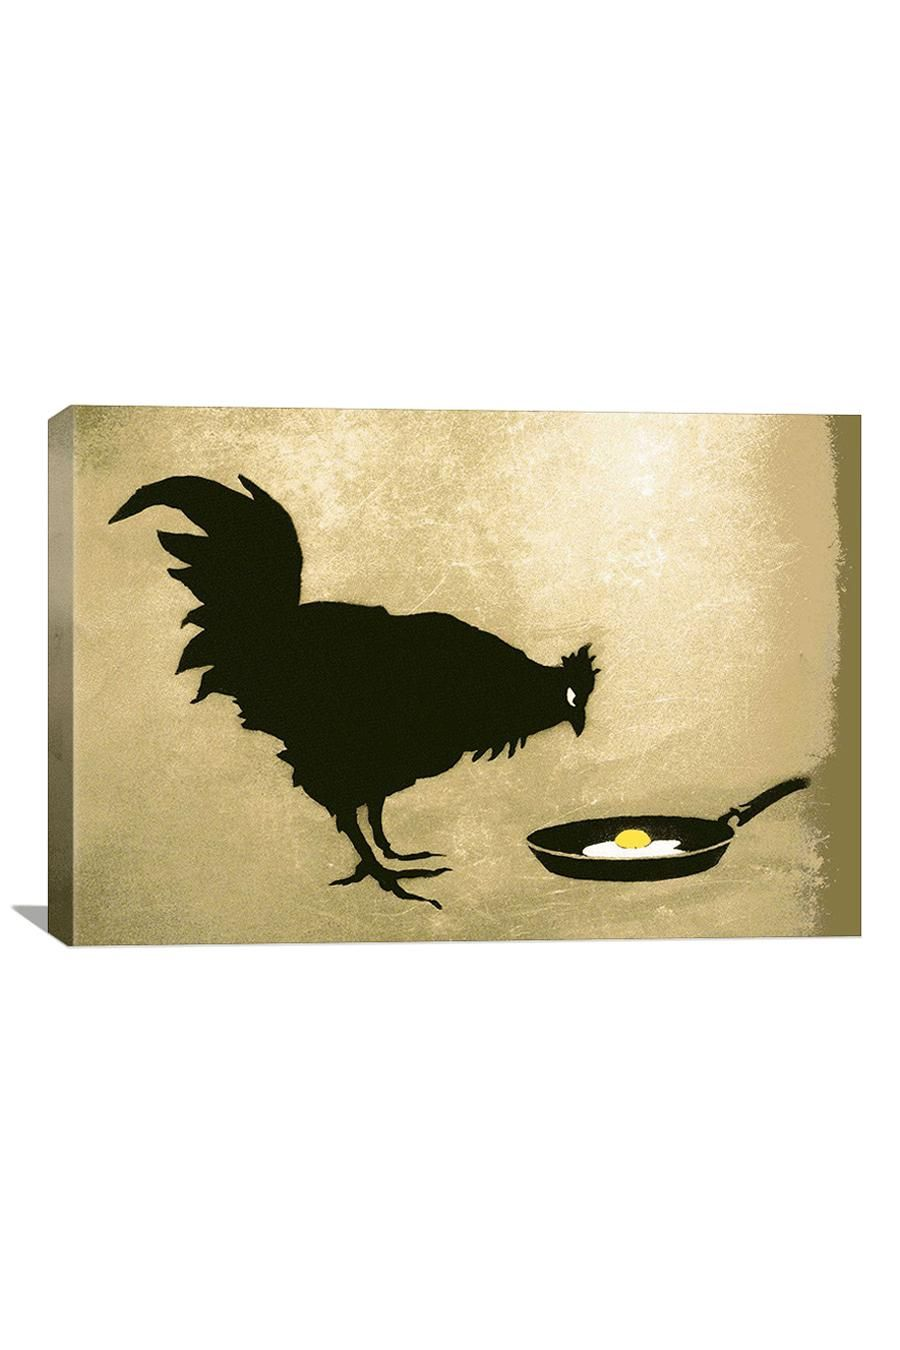 Banksy Chicken & Egg Canvas Print | <Art> | Pinterest | Banksy, Egg ...